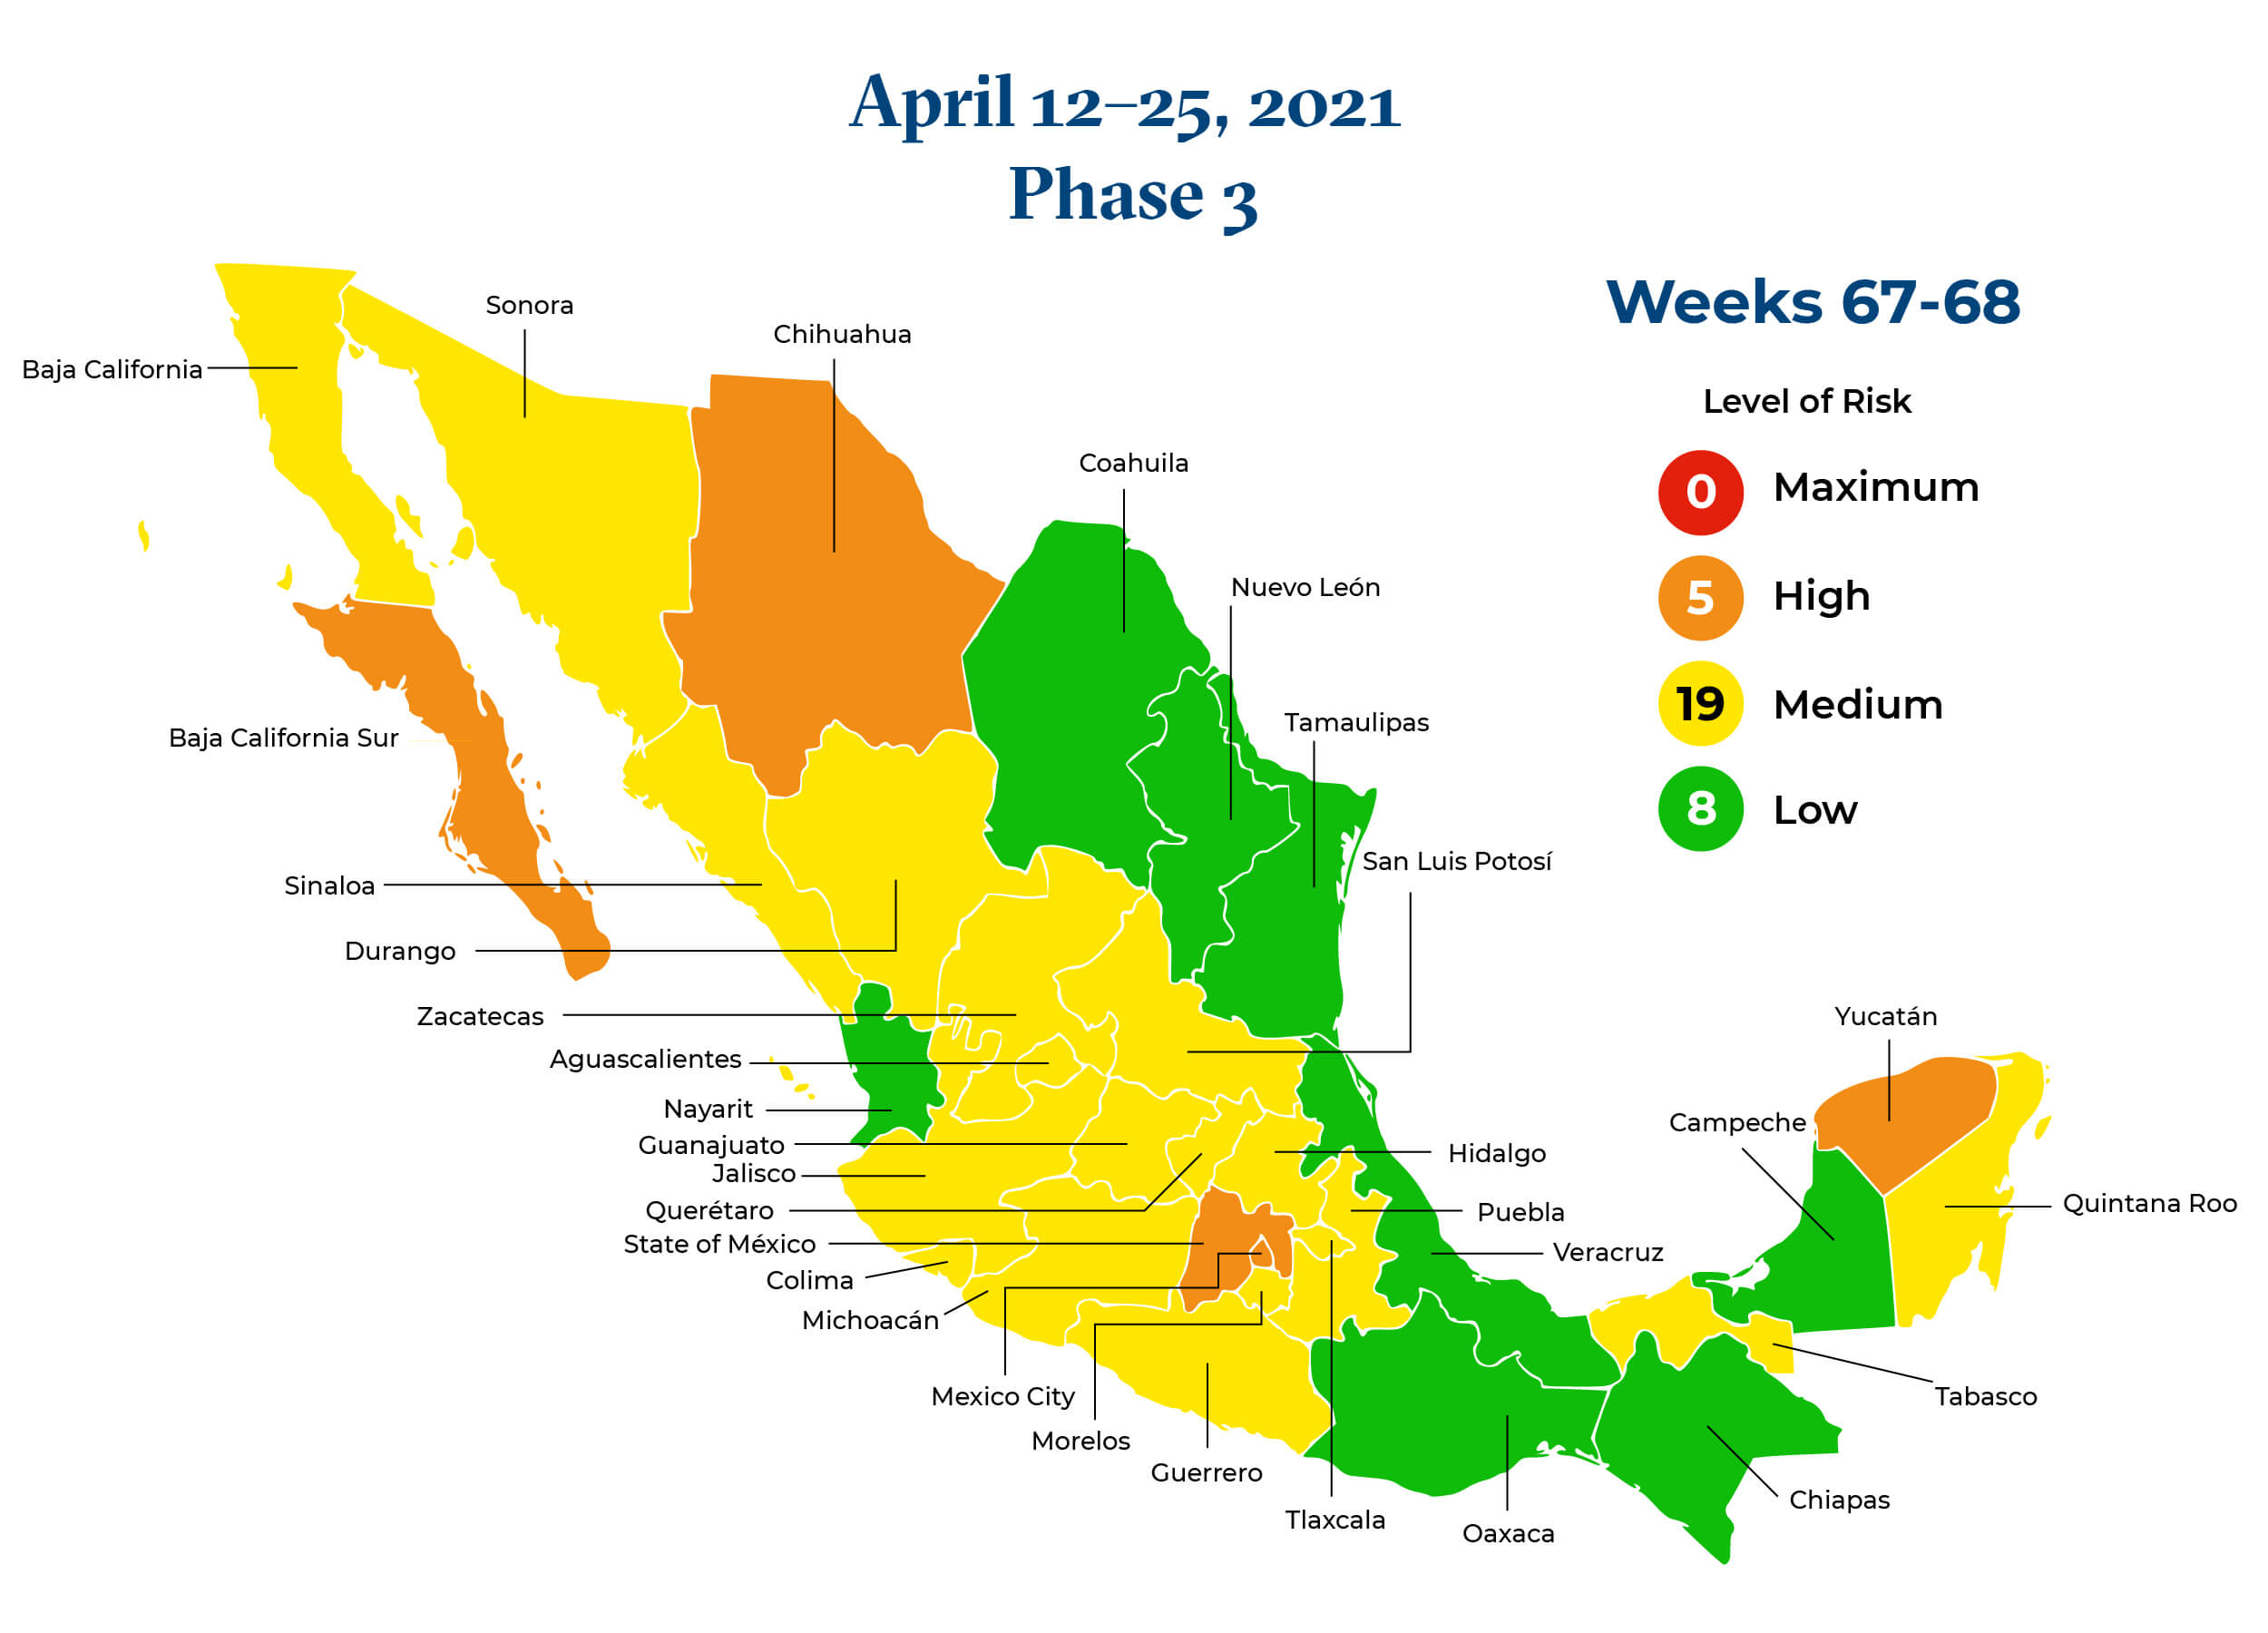 Mexico April 12 2021 to April 25 2021 Phase 3 Map